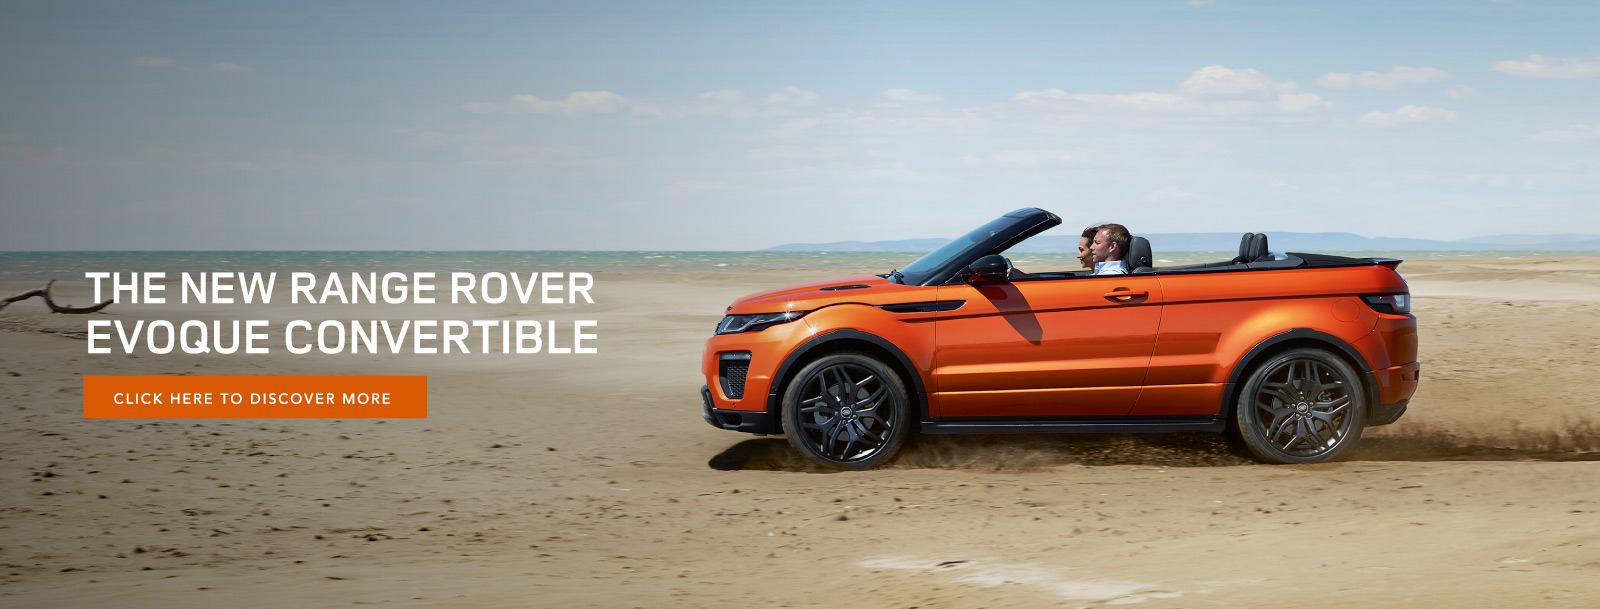 Land Rover Range Rover Evoque Convertible Offers New Land Rover